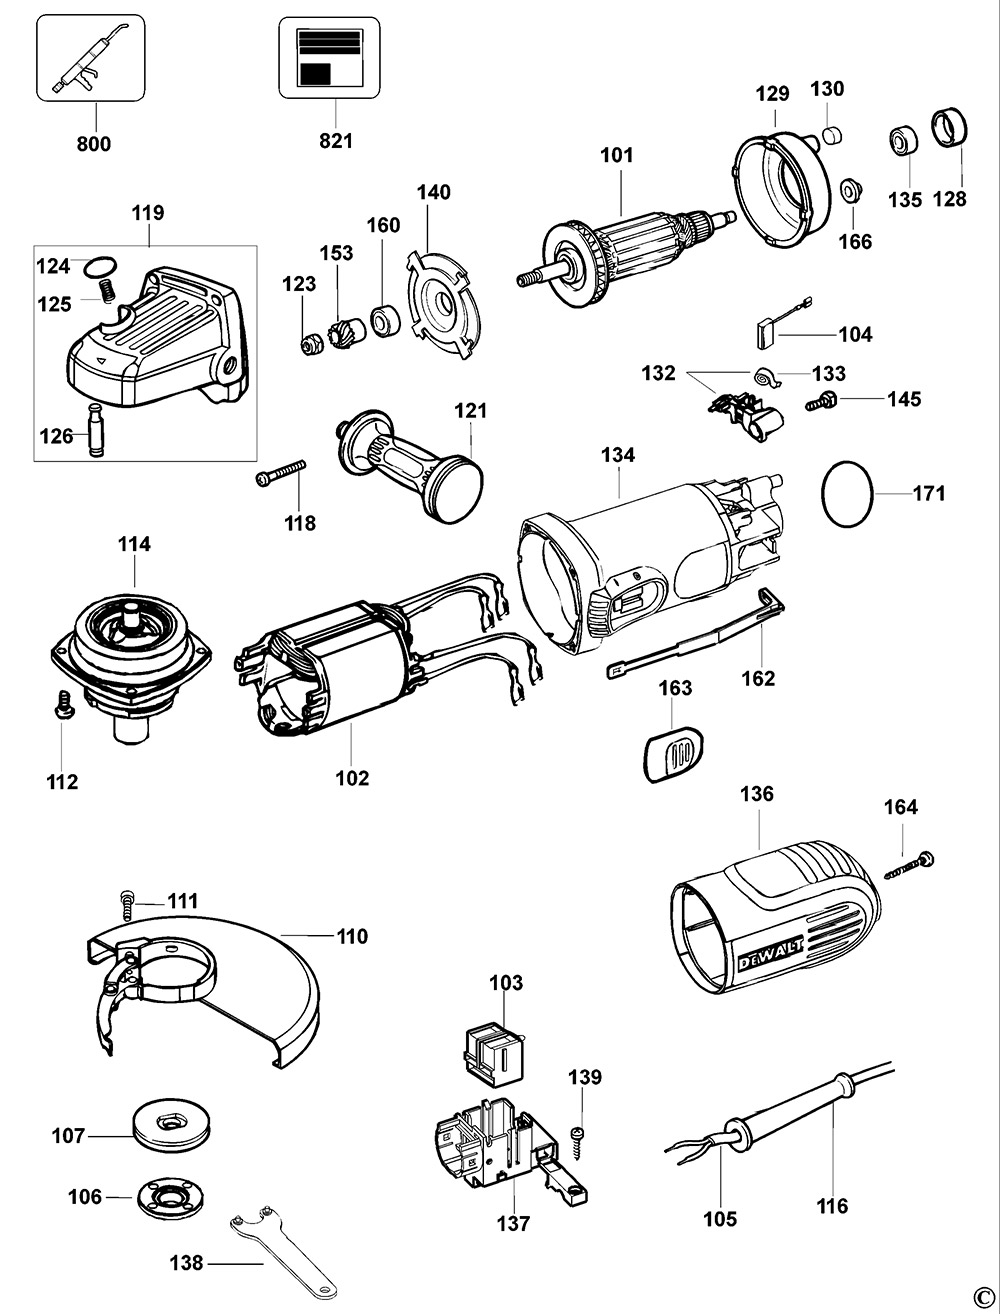 Dewalt D28128 Type 1 Small Angle Grinder Spare Parts